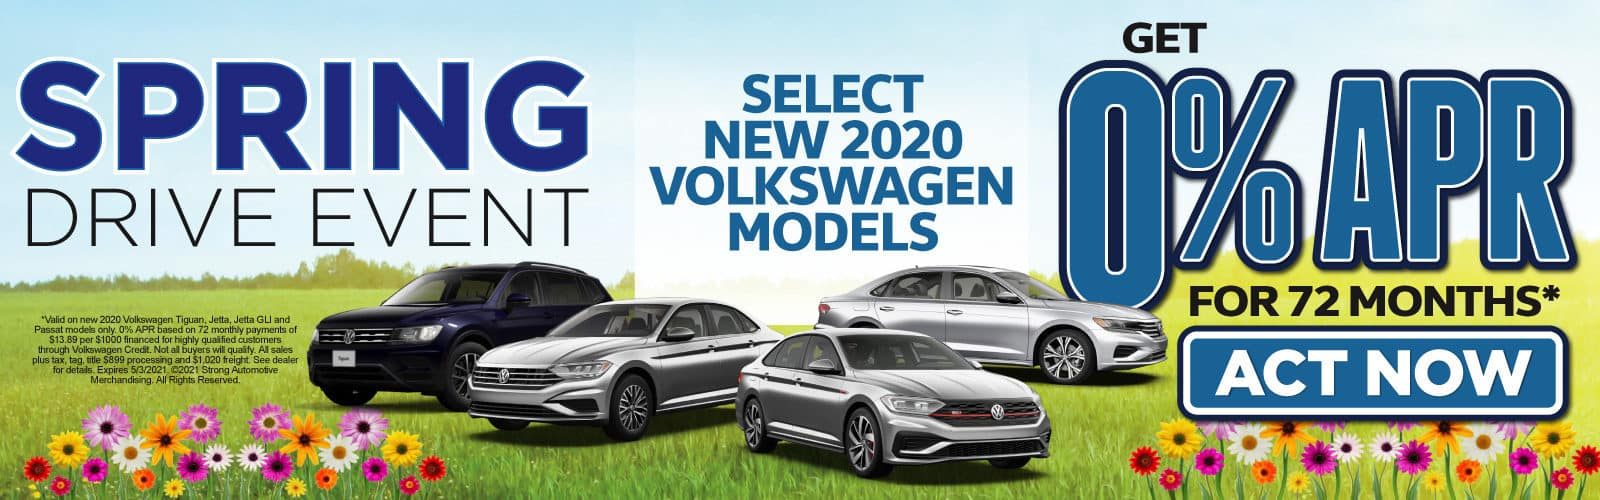 Select New 2020 VW Models - 0% APR for up to 72 months - Act Now